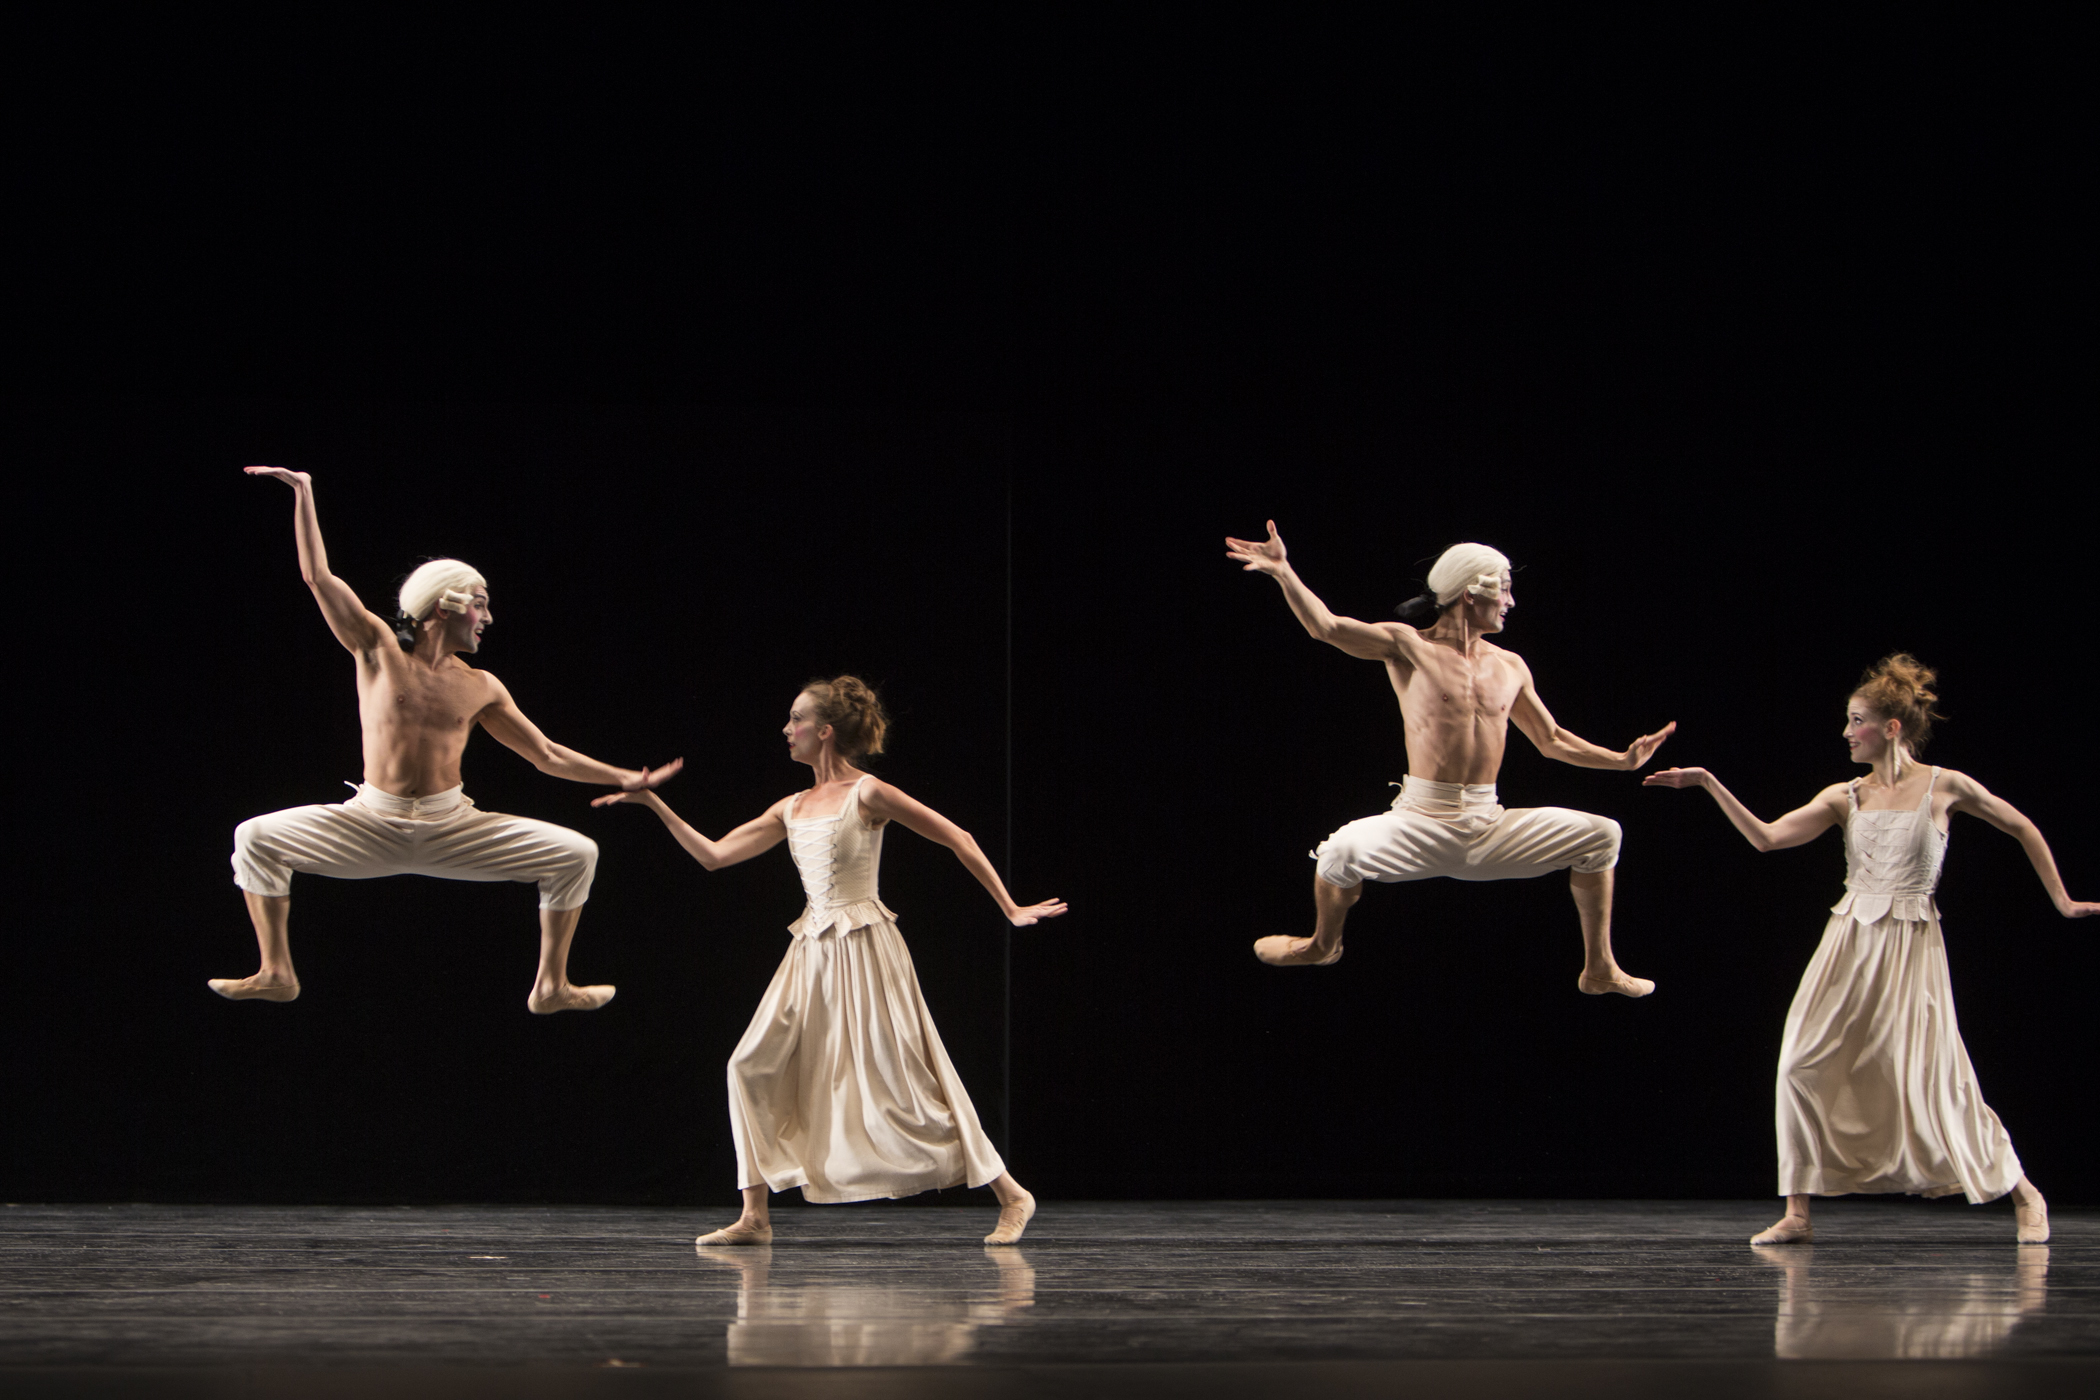 (L-R) Pacific Northwest Ballet company dancers Jonathan Porretta, Kylee Kitchens, James Moore and Leah Merchant in Jiri Kylian's Sechs Tänze (Six Dances), presented as part of KYLIAN + PITE, November 8 – 17, 2013.  Photo © Angela Sterling.